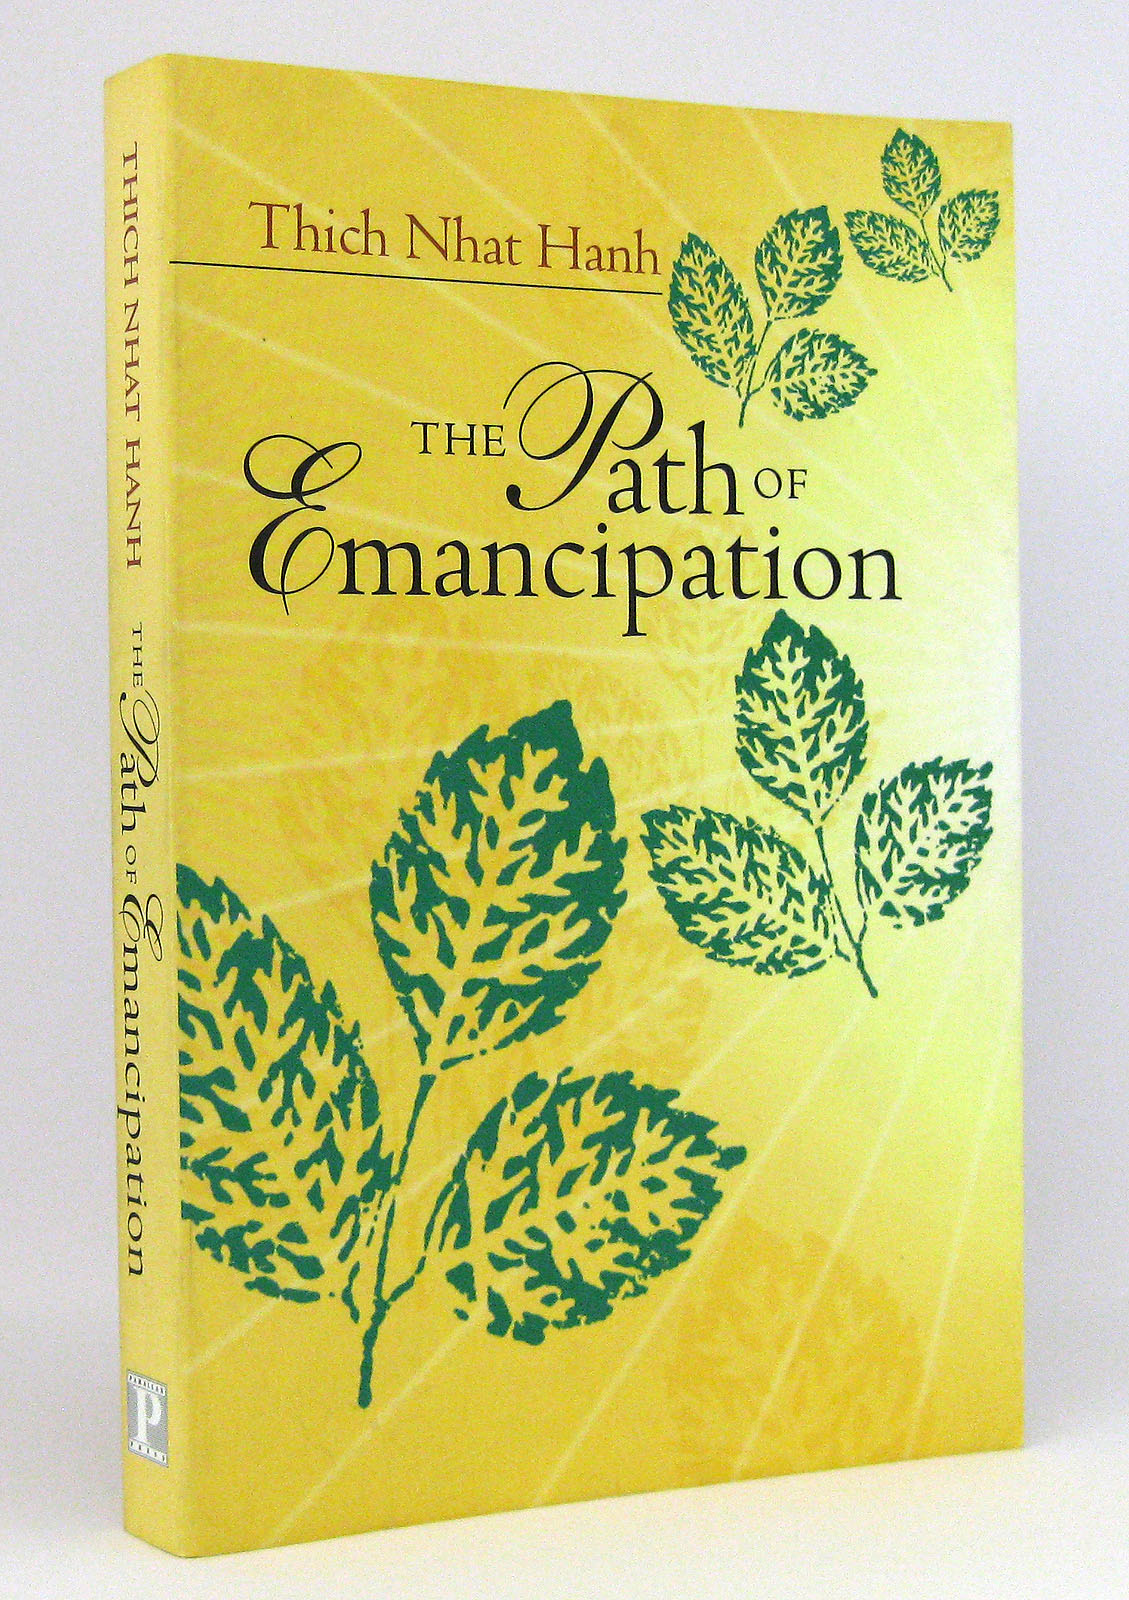 The Path of Emancipation : Talks from a 21-Day Mindfulness Retreat - Nhat Hanh, Thich